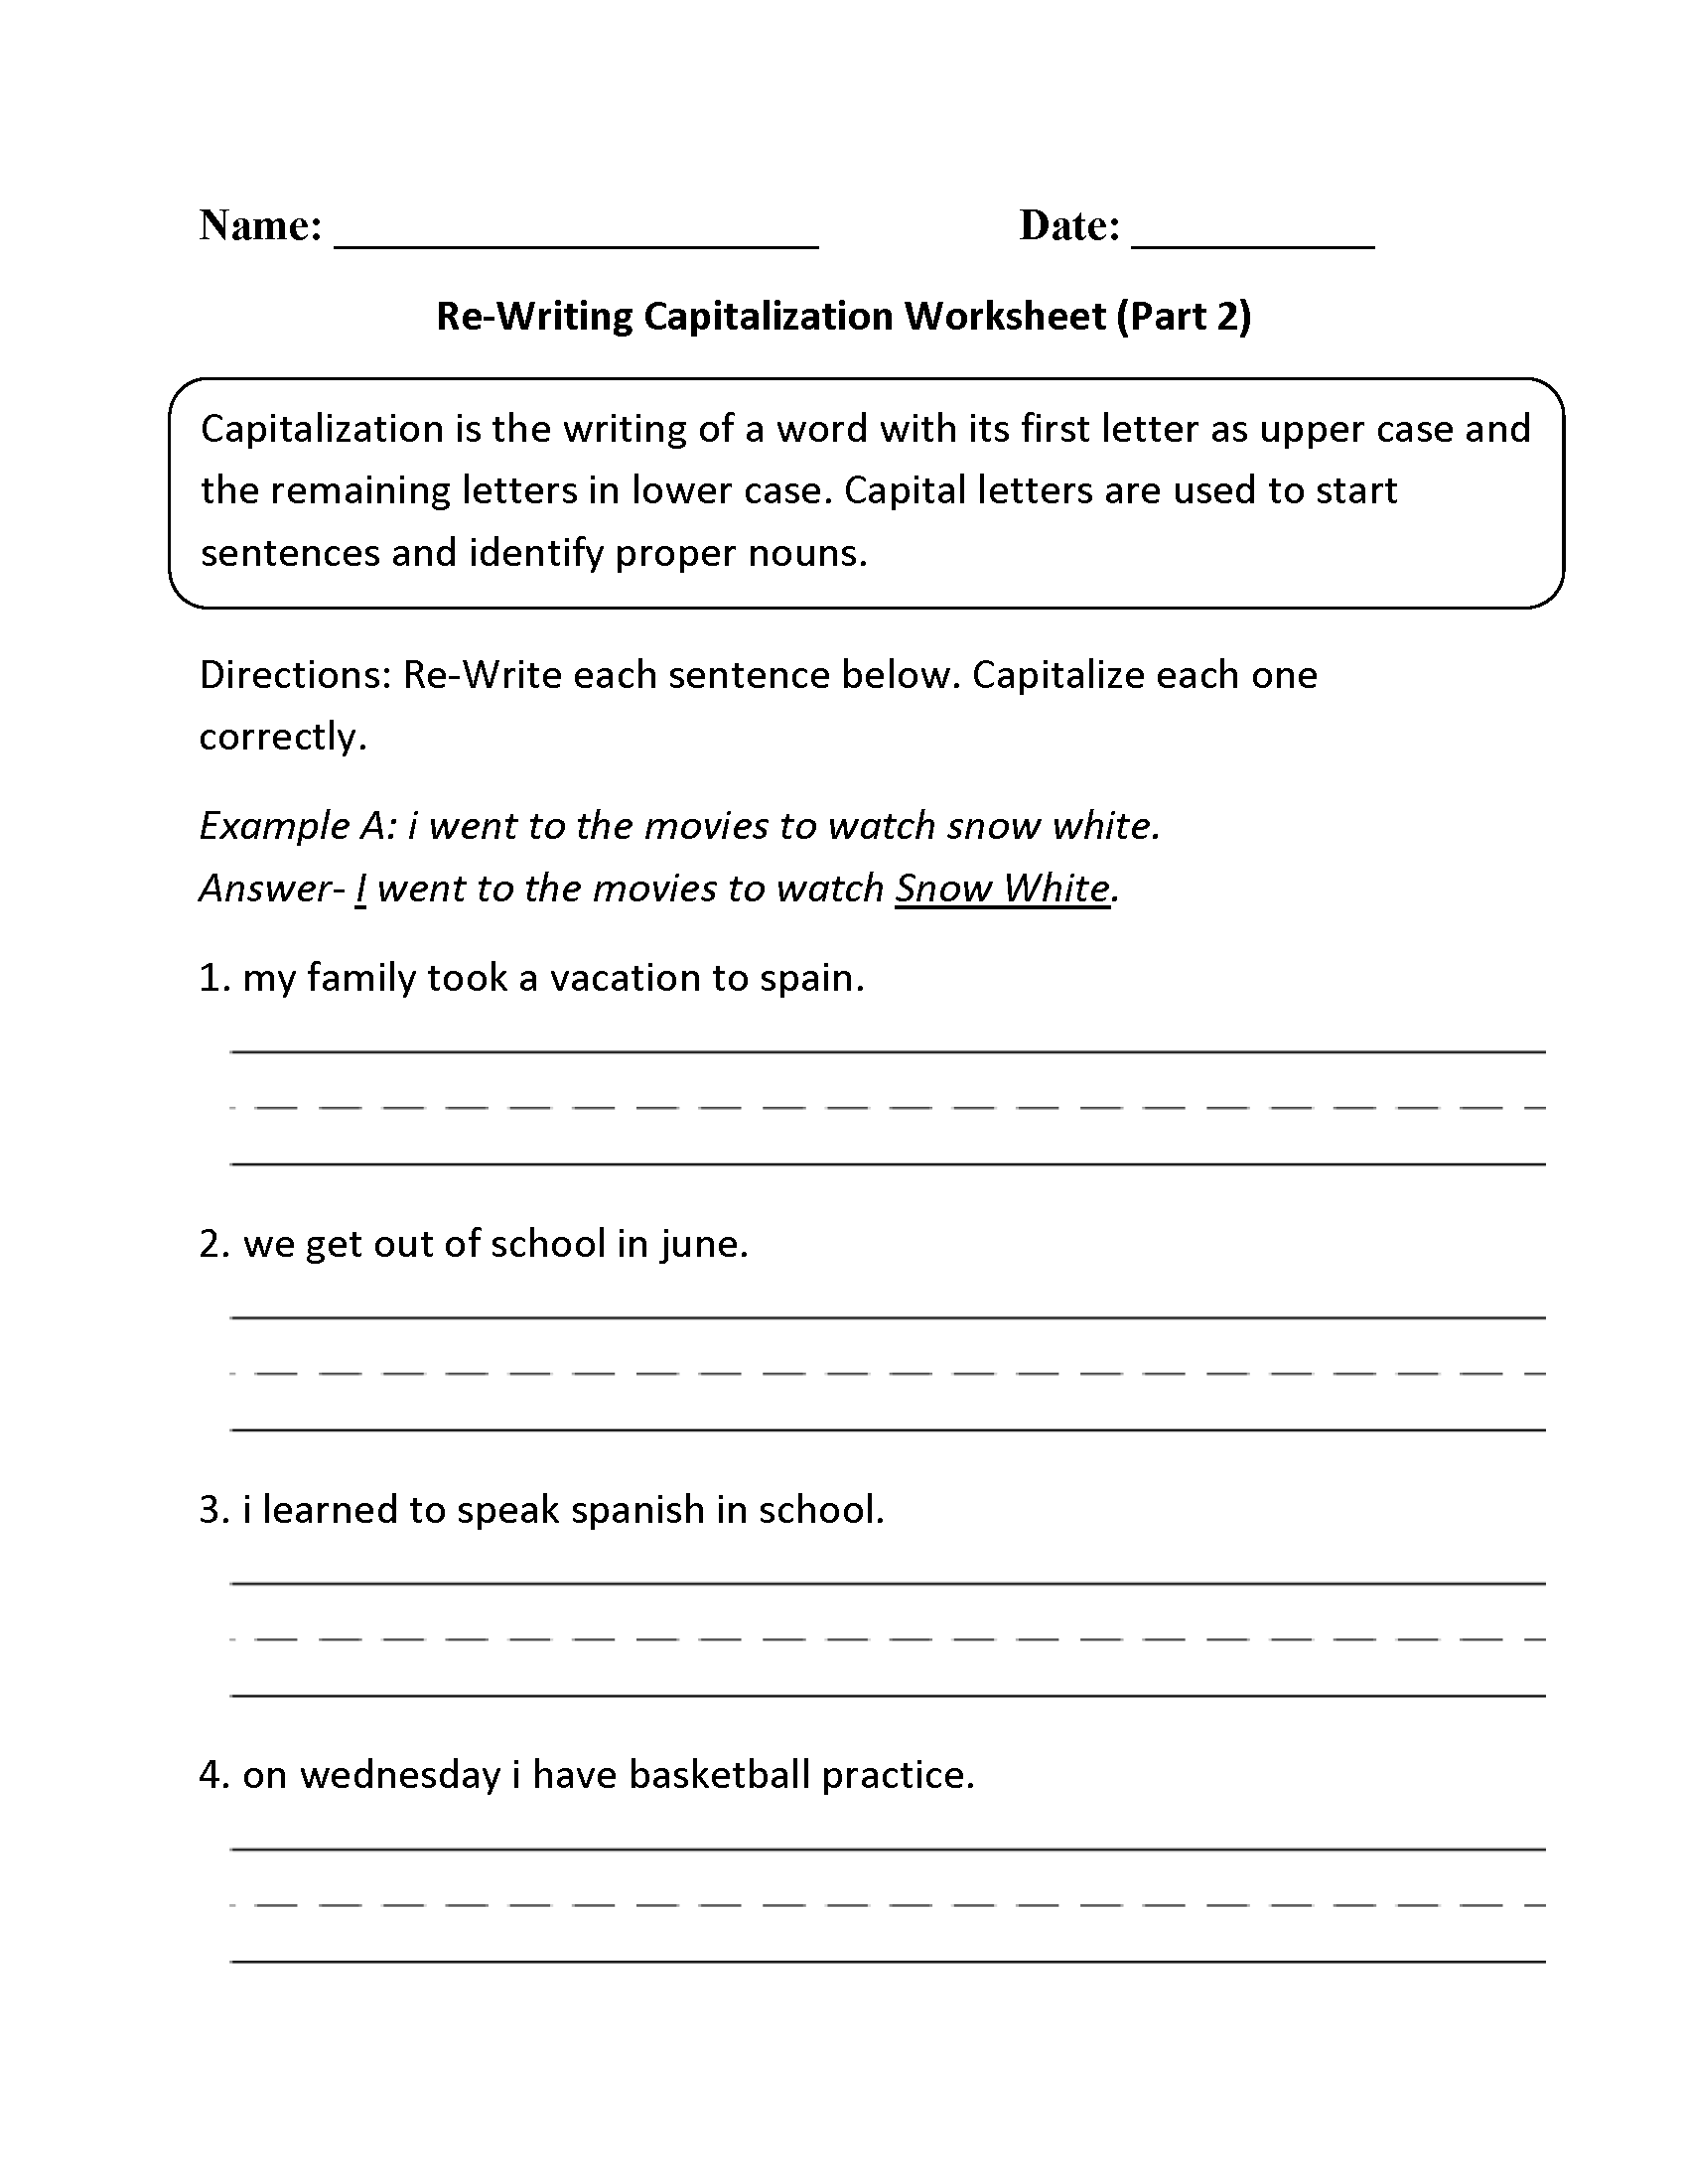 Re Writing Capitalization Worksheet Part 2